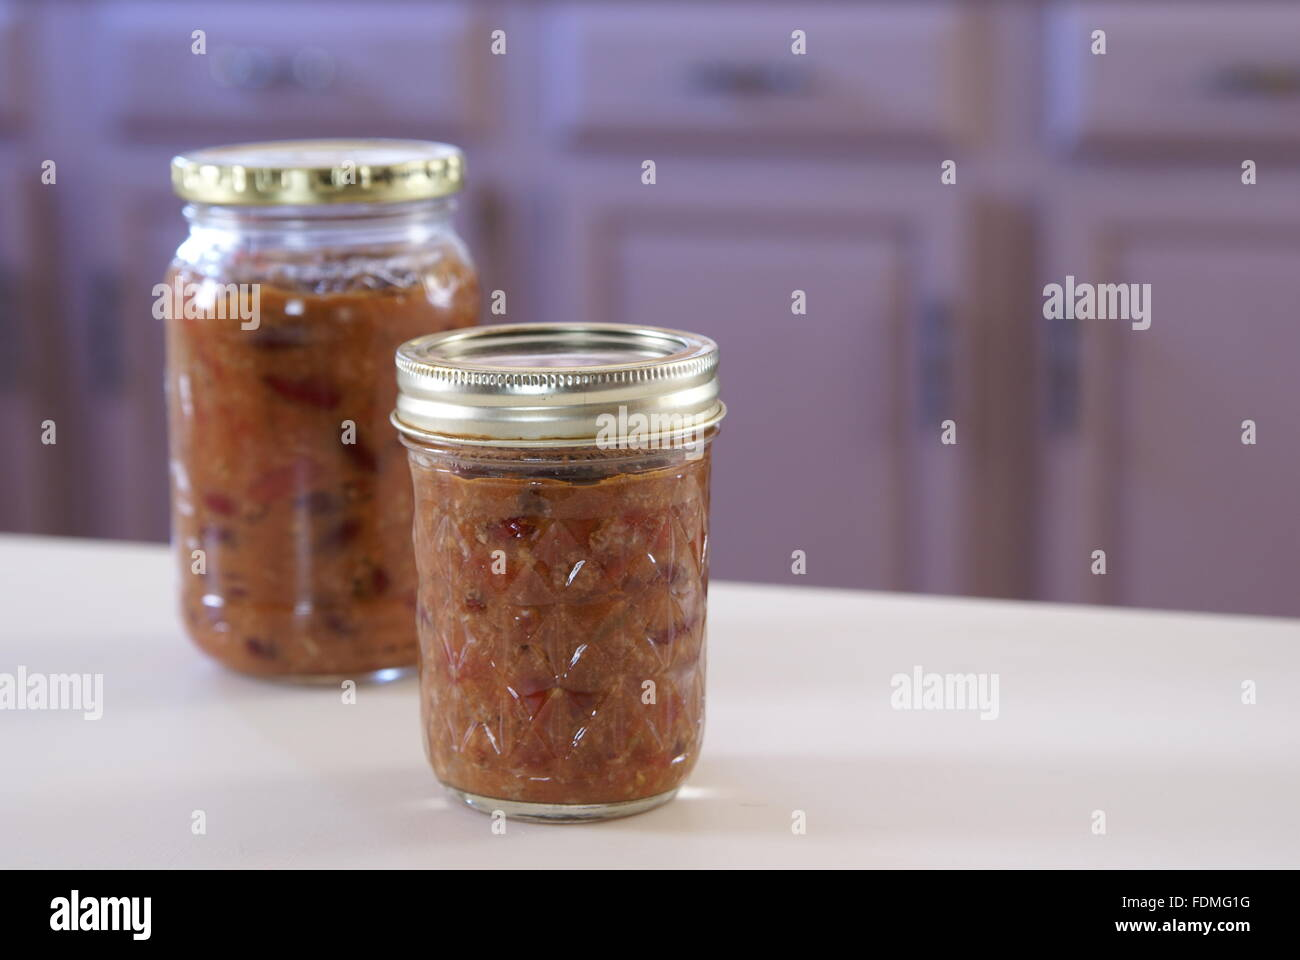 Homemade chili in glass canning jars in a home kitchen.